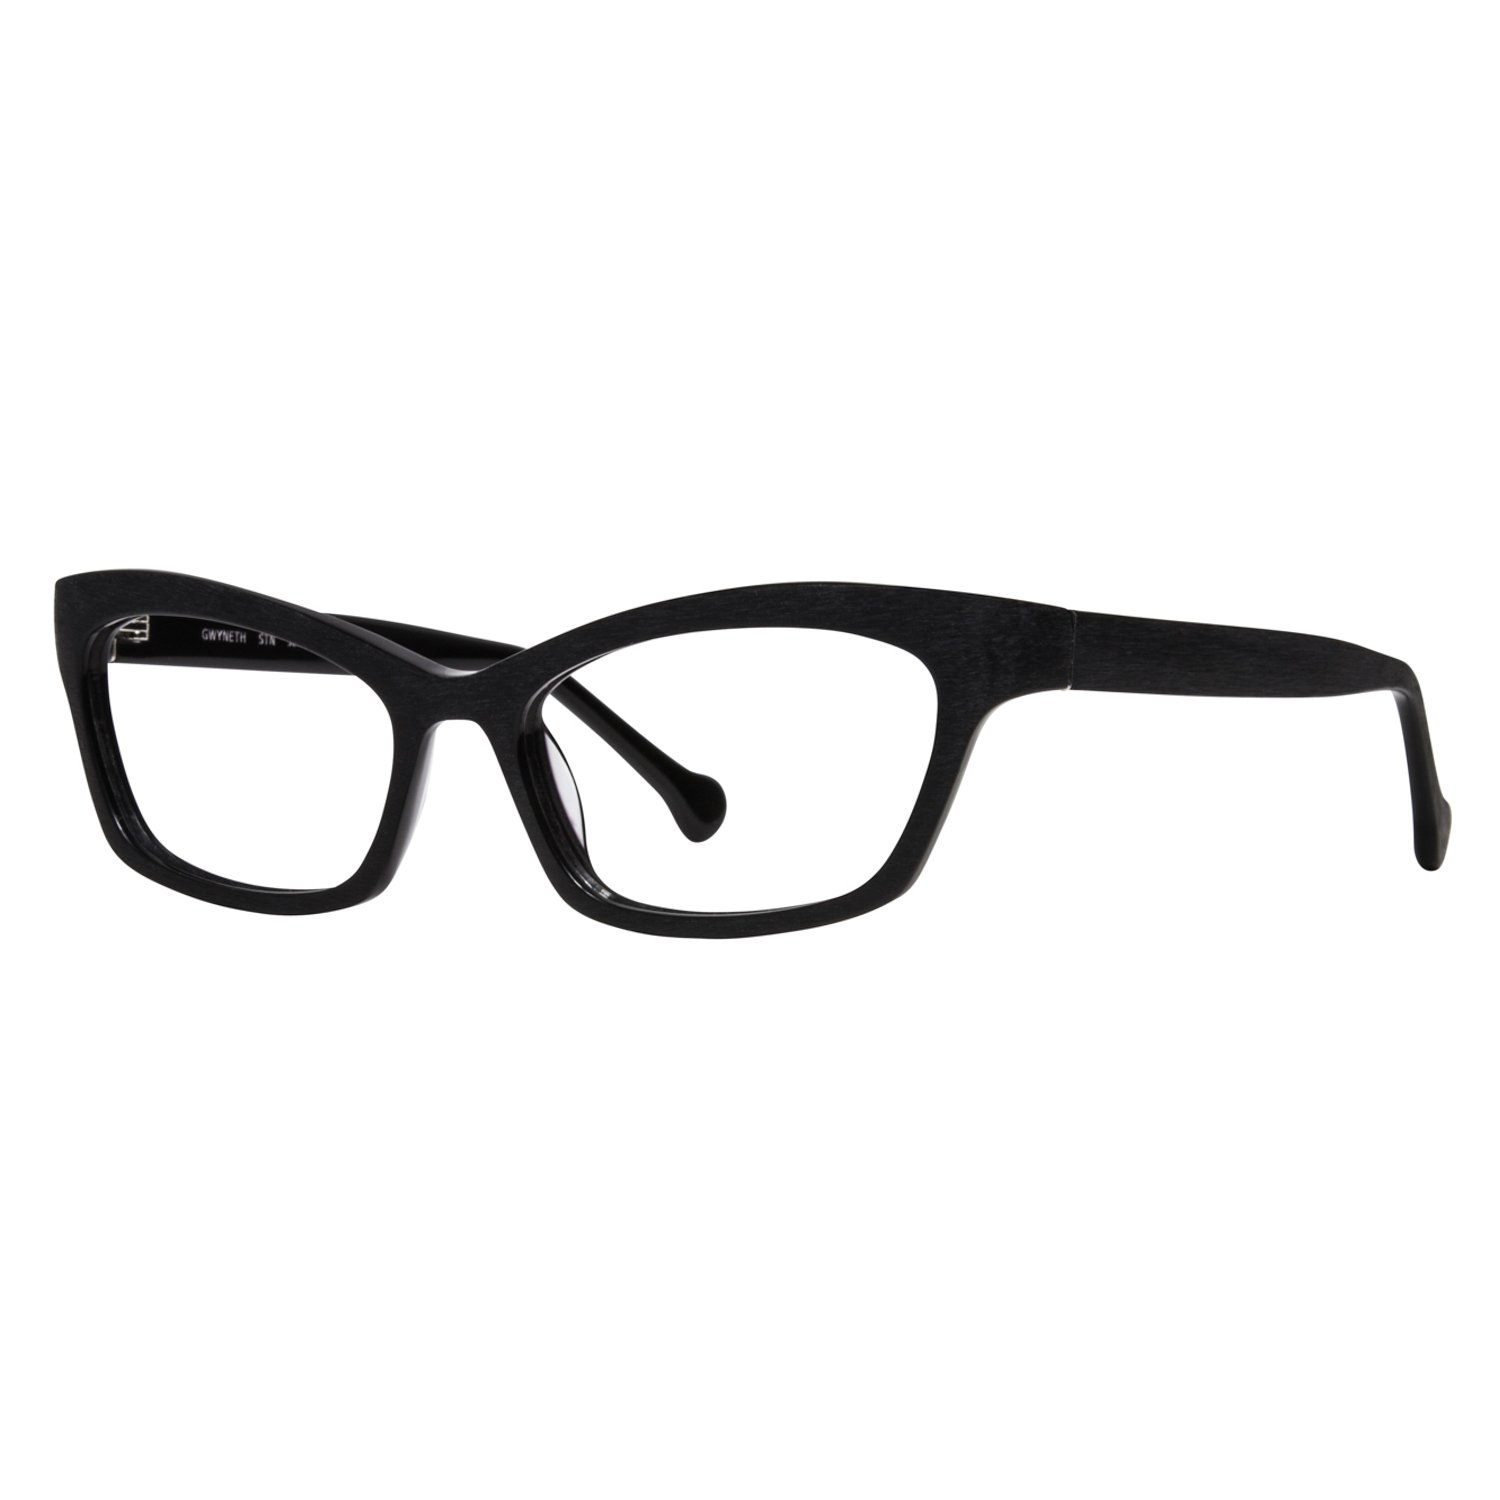 eyeOs Model 'Gwyneth', Photochromic Bifocal Readers, Transition from Clear Indoors to Sunglass Outdoors, Cateye Dressy, Anti Glare